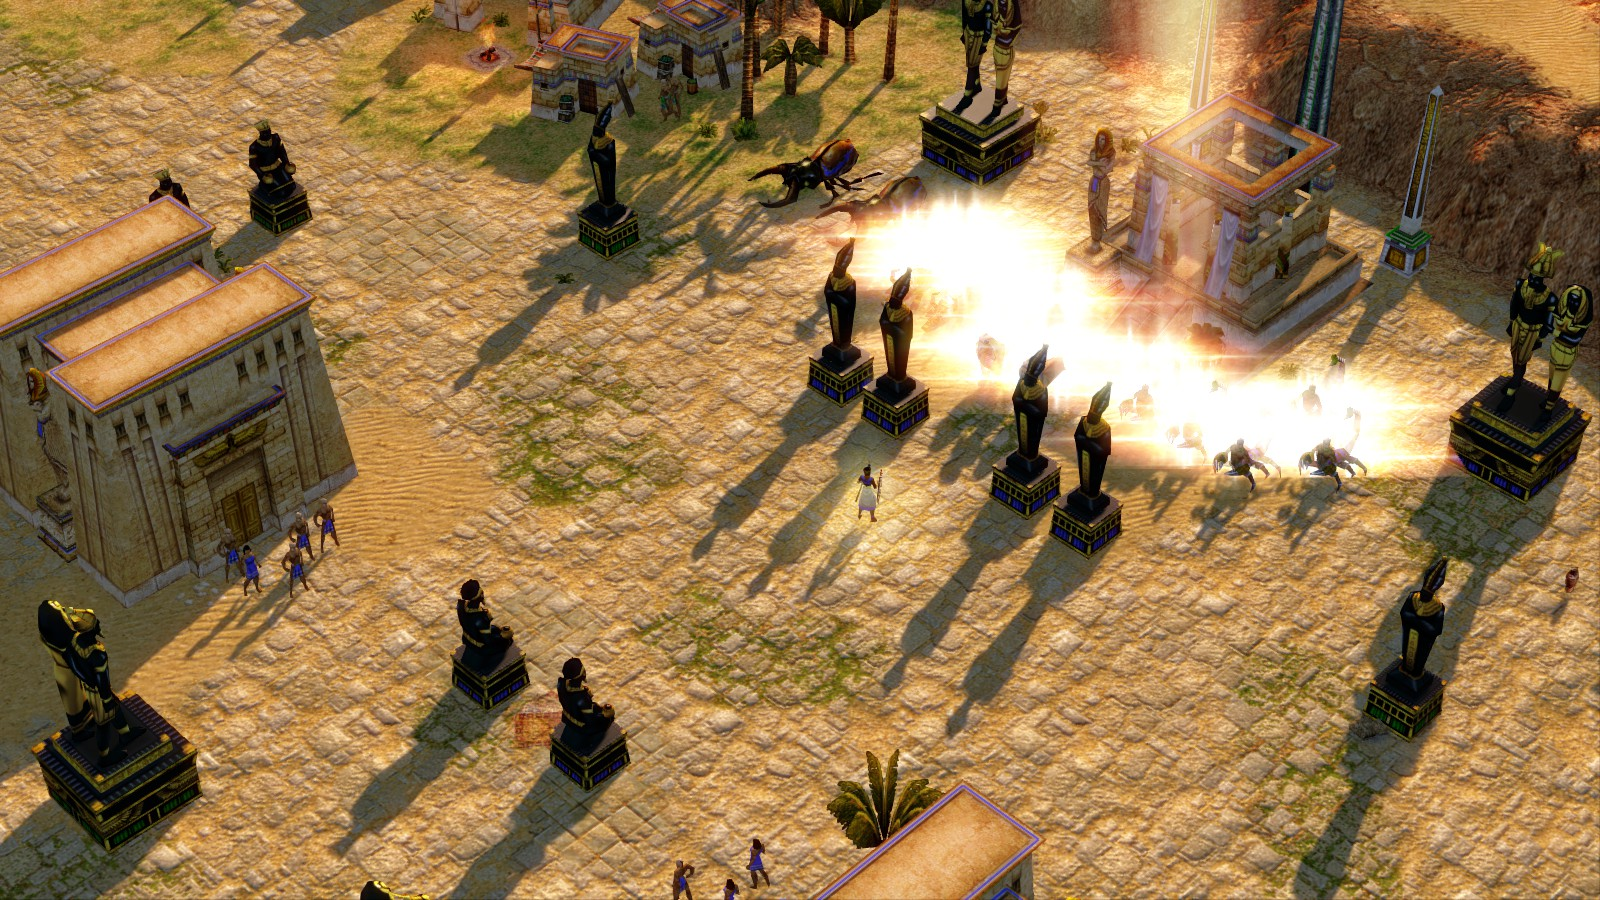 Age of Mythology Free Download Features: